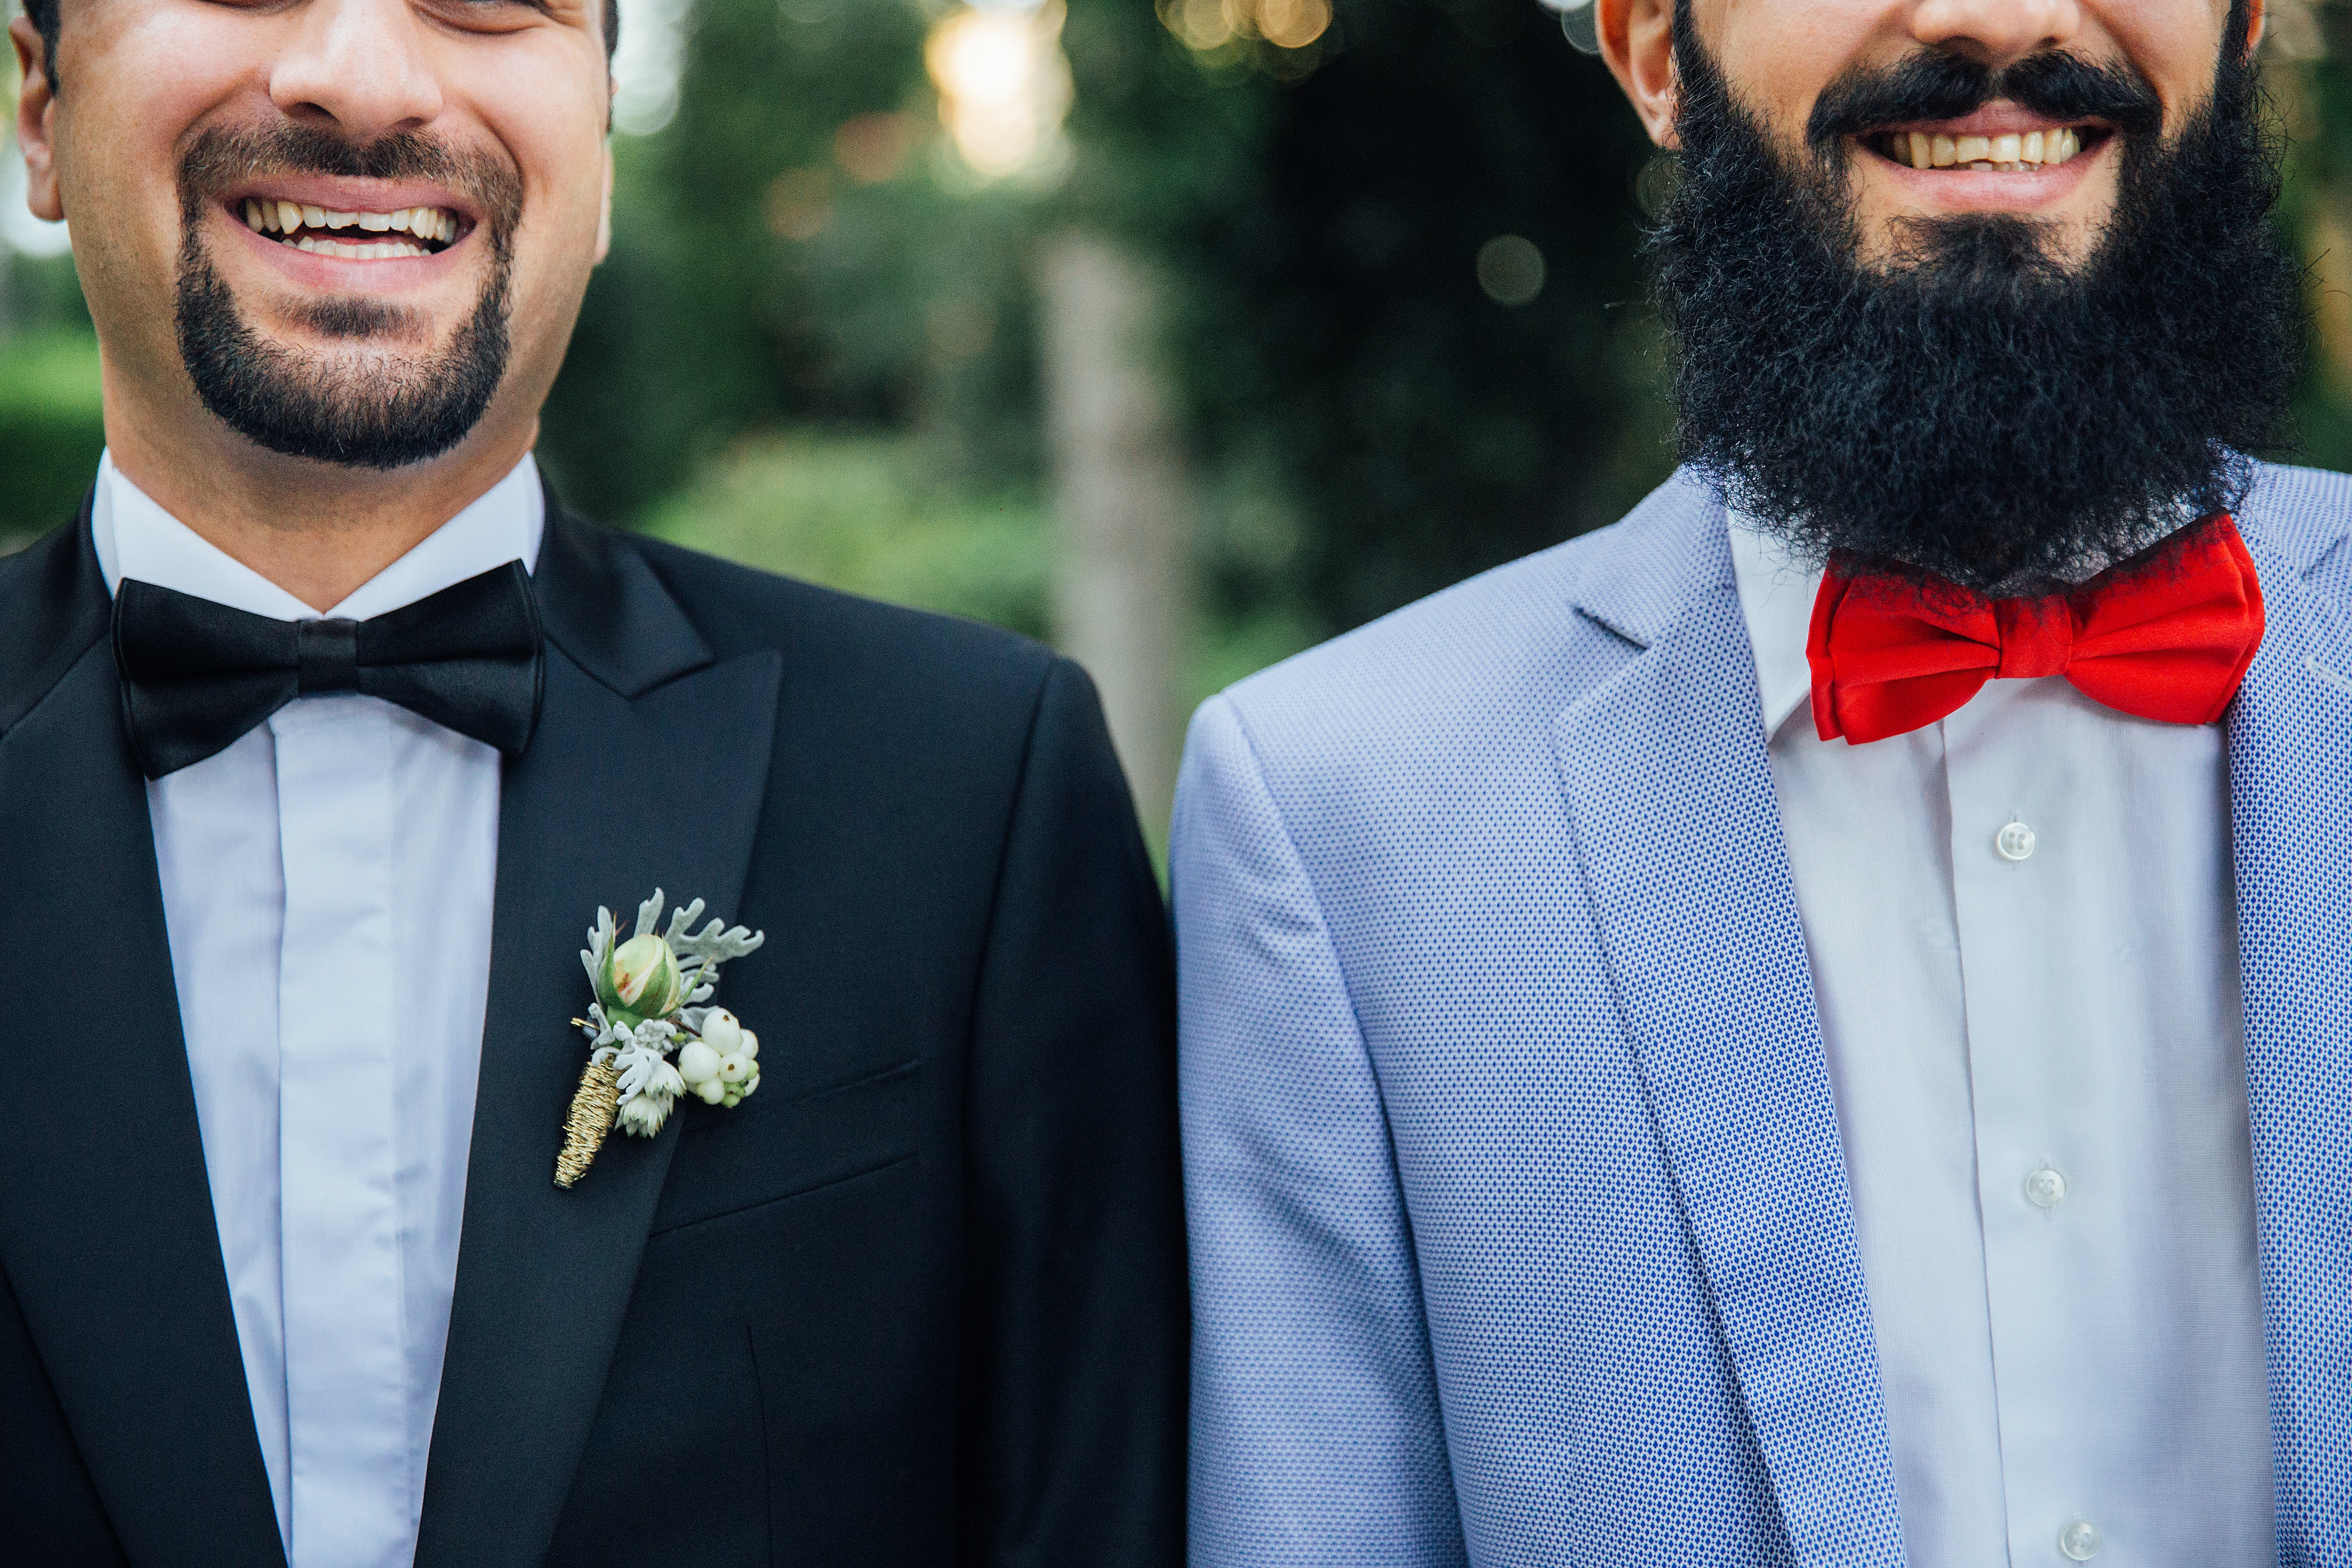 Two smiling bearded men in suits and bowties stand together outdoors